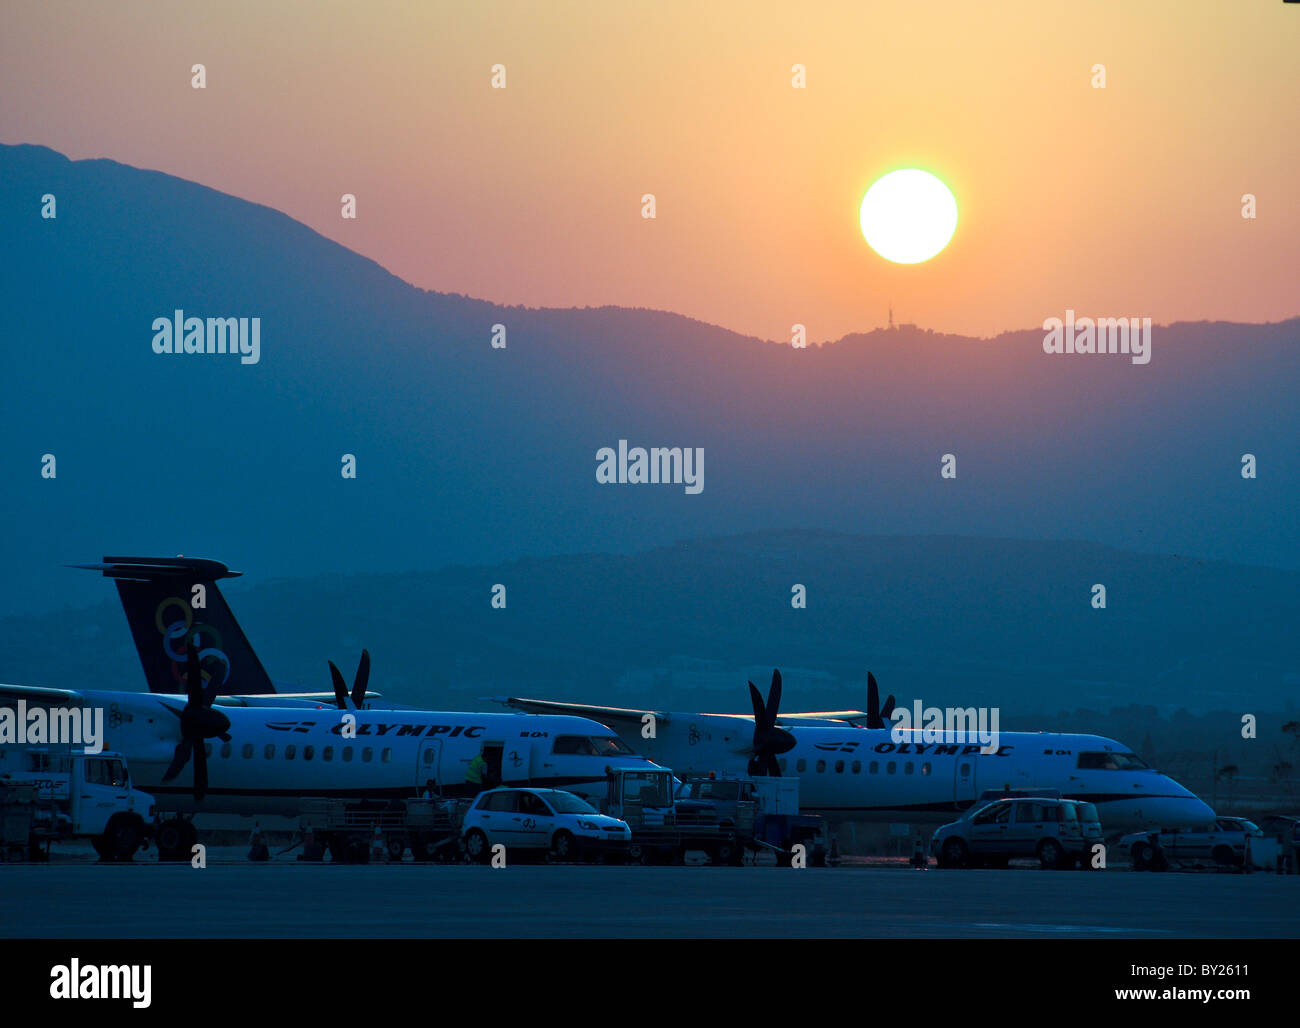 Greece, Athens Airport, Olympic Airlines Dash8 passanger planes on the ground at sunset - Stock Image